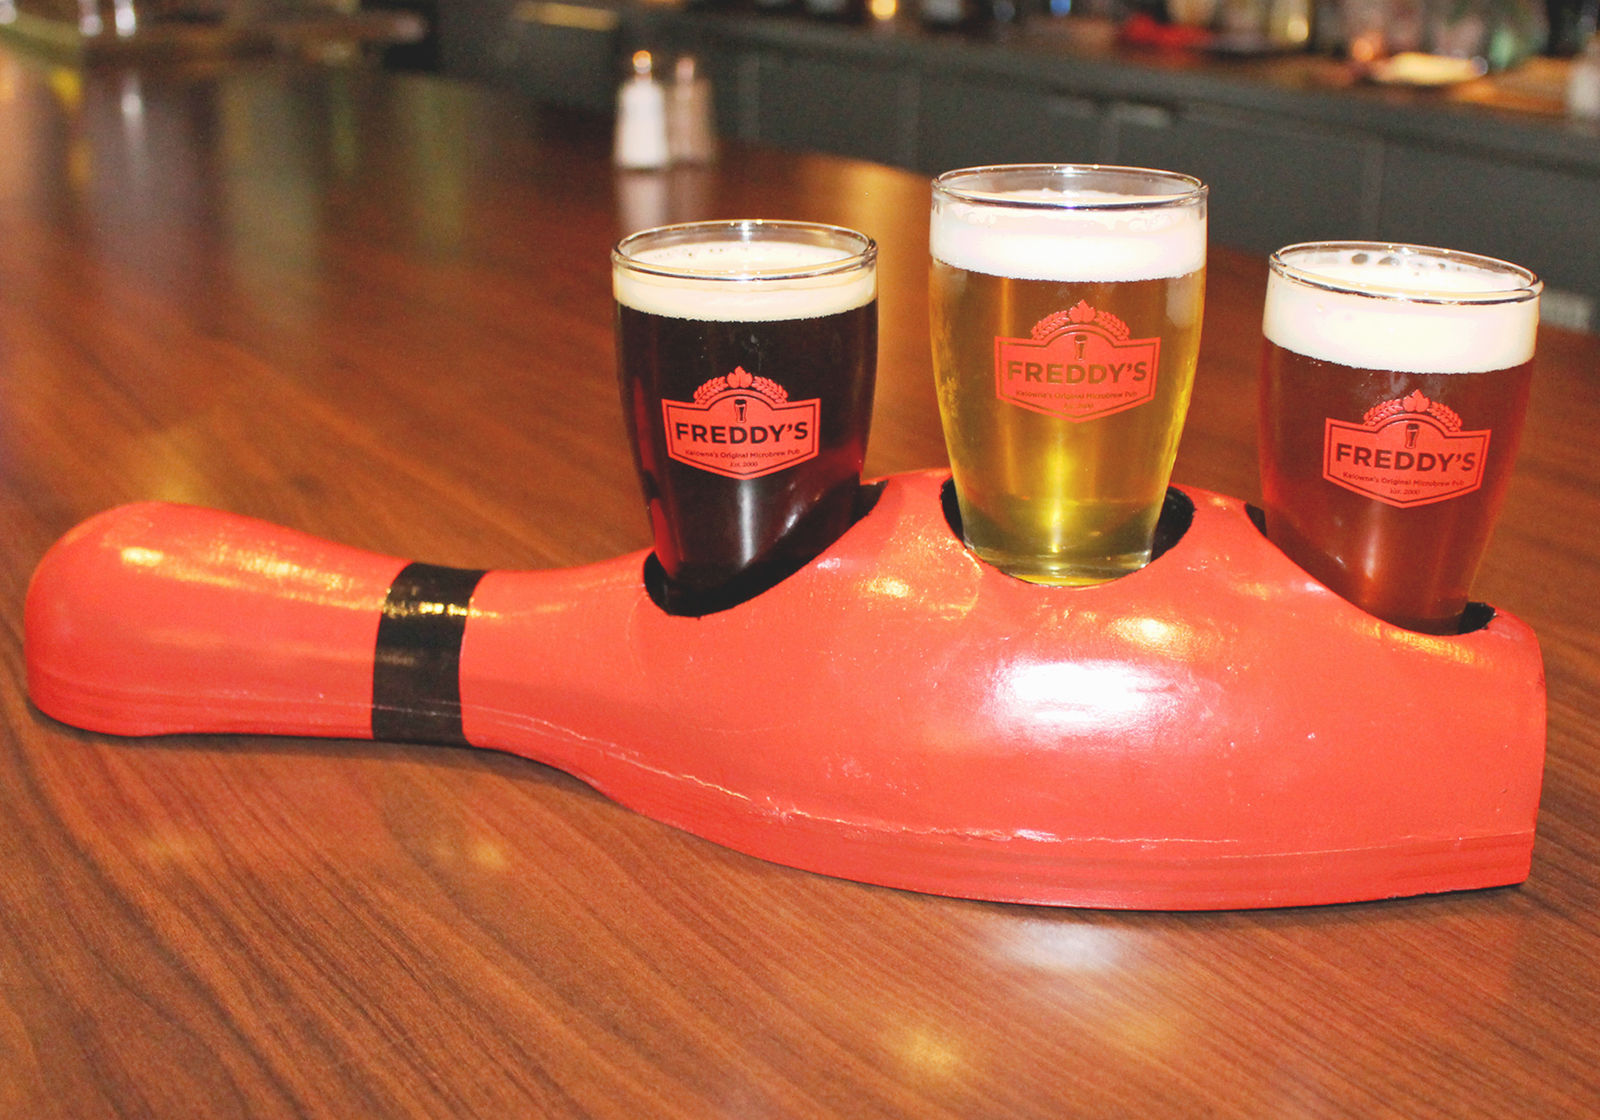 (Image courtesy of McCurdy Bowling Centre and Freddy's Brewpub) Bowl and try some of the tasty craft ales at Freddy's Brewpub in the McCurdy Bowling Centre, located just down the road from the Comfort Suites Kelowna hotel.